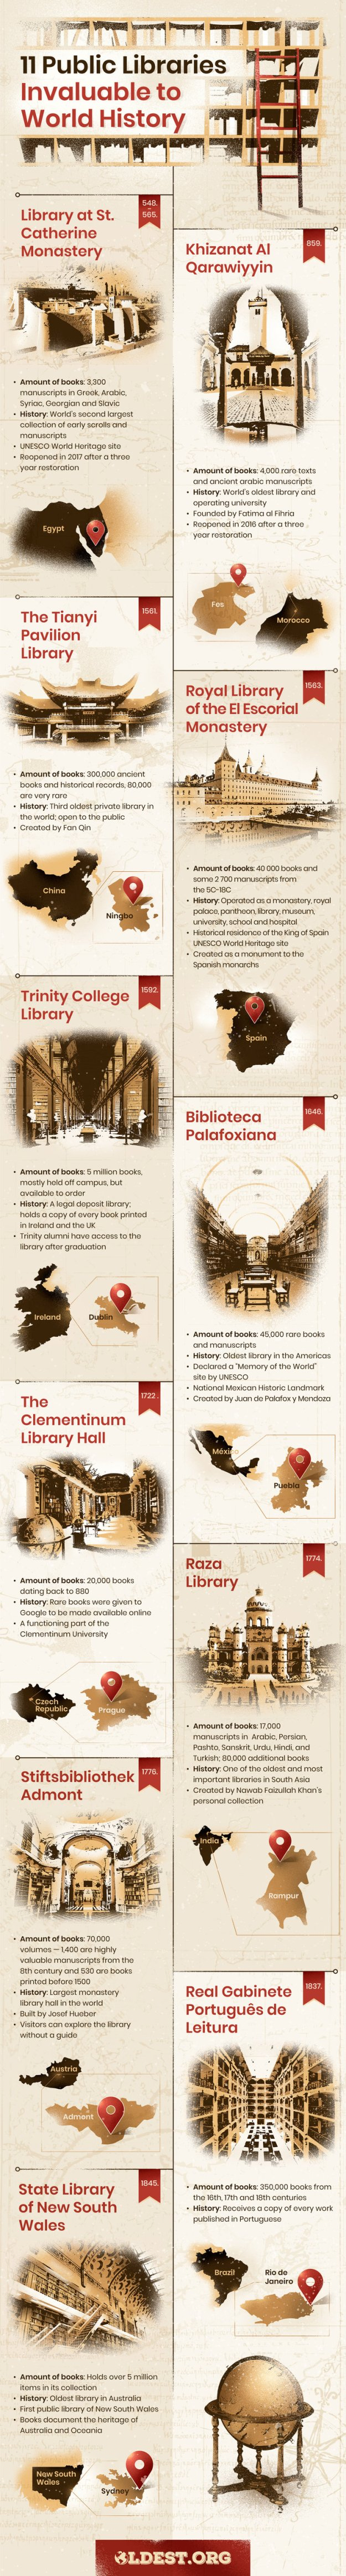 Most Amazing Libraries Around the World